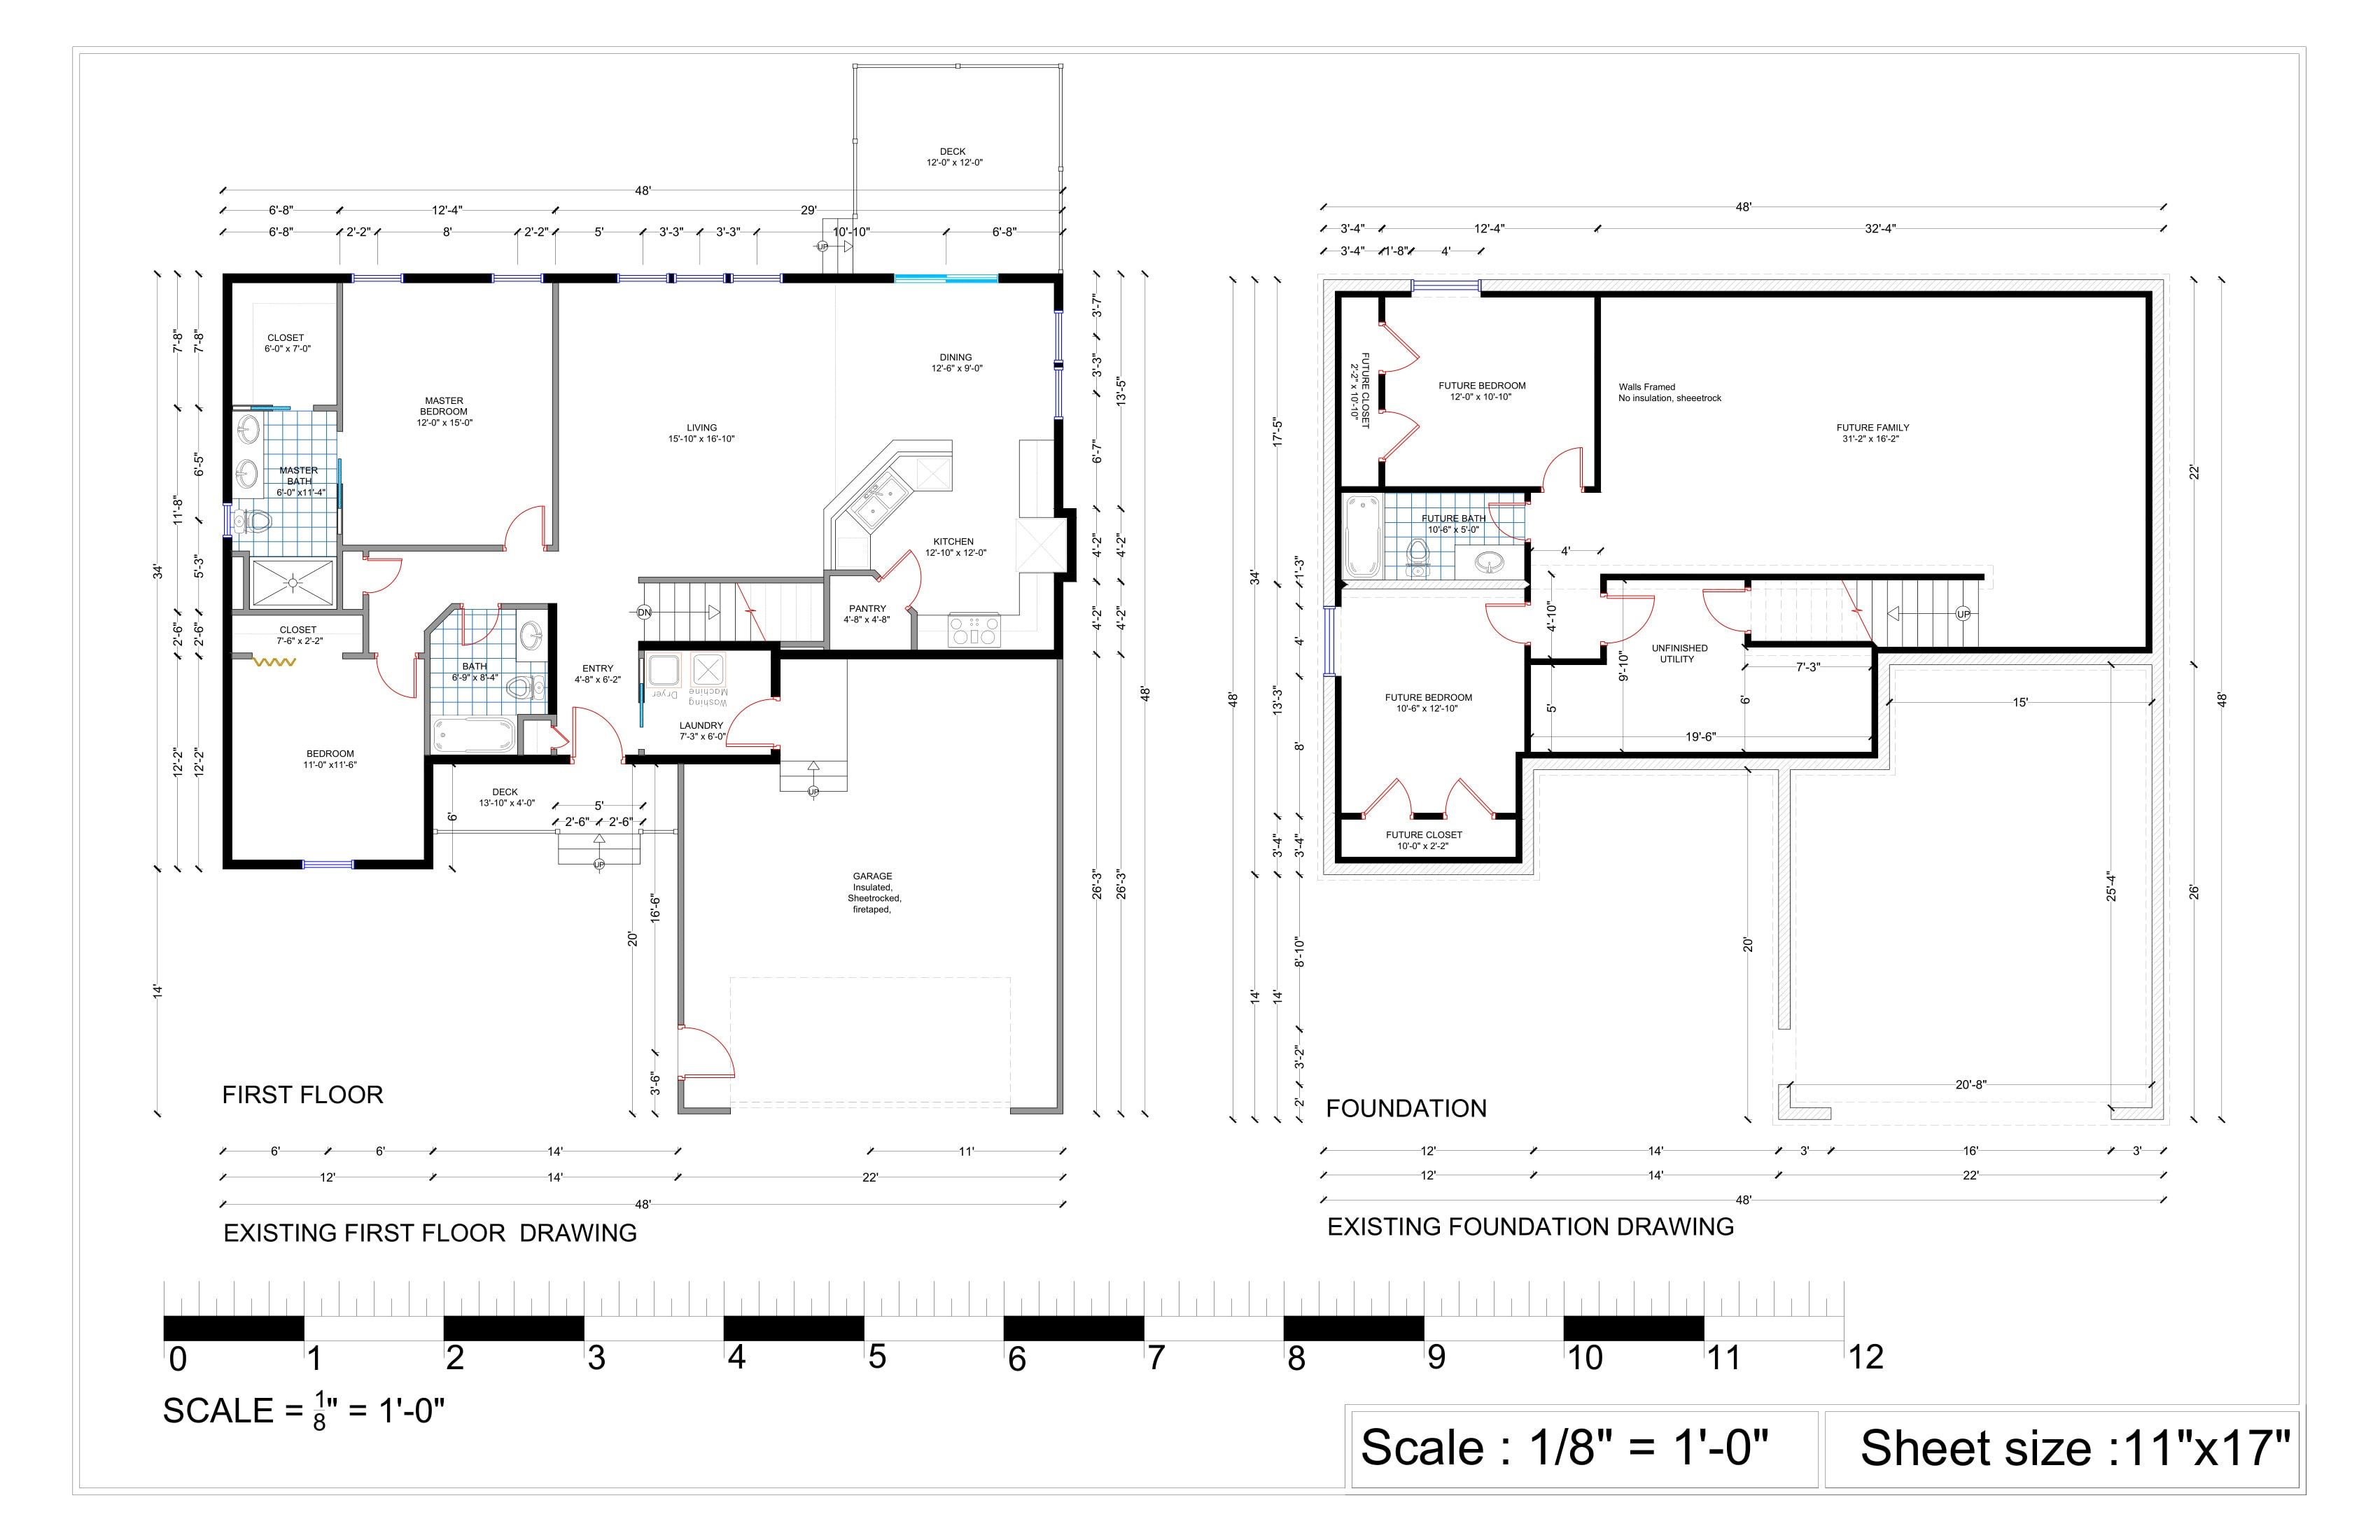 Draw autocad drawings or floor plans in